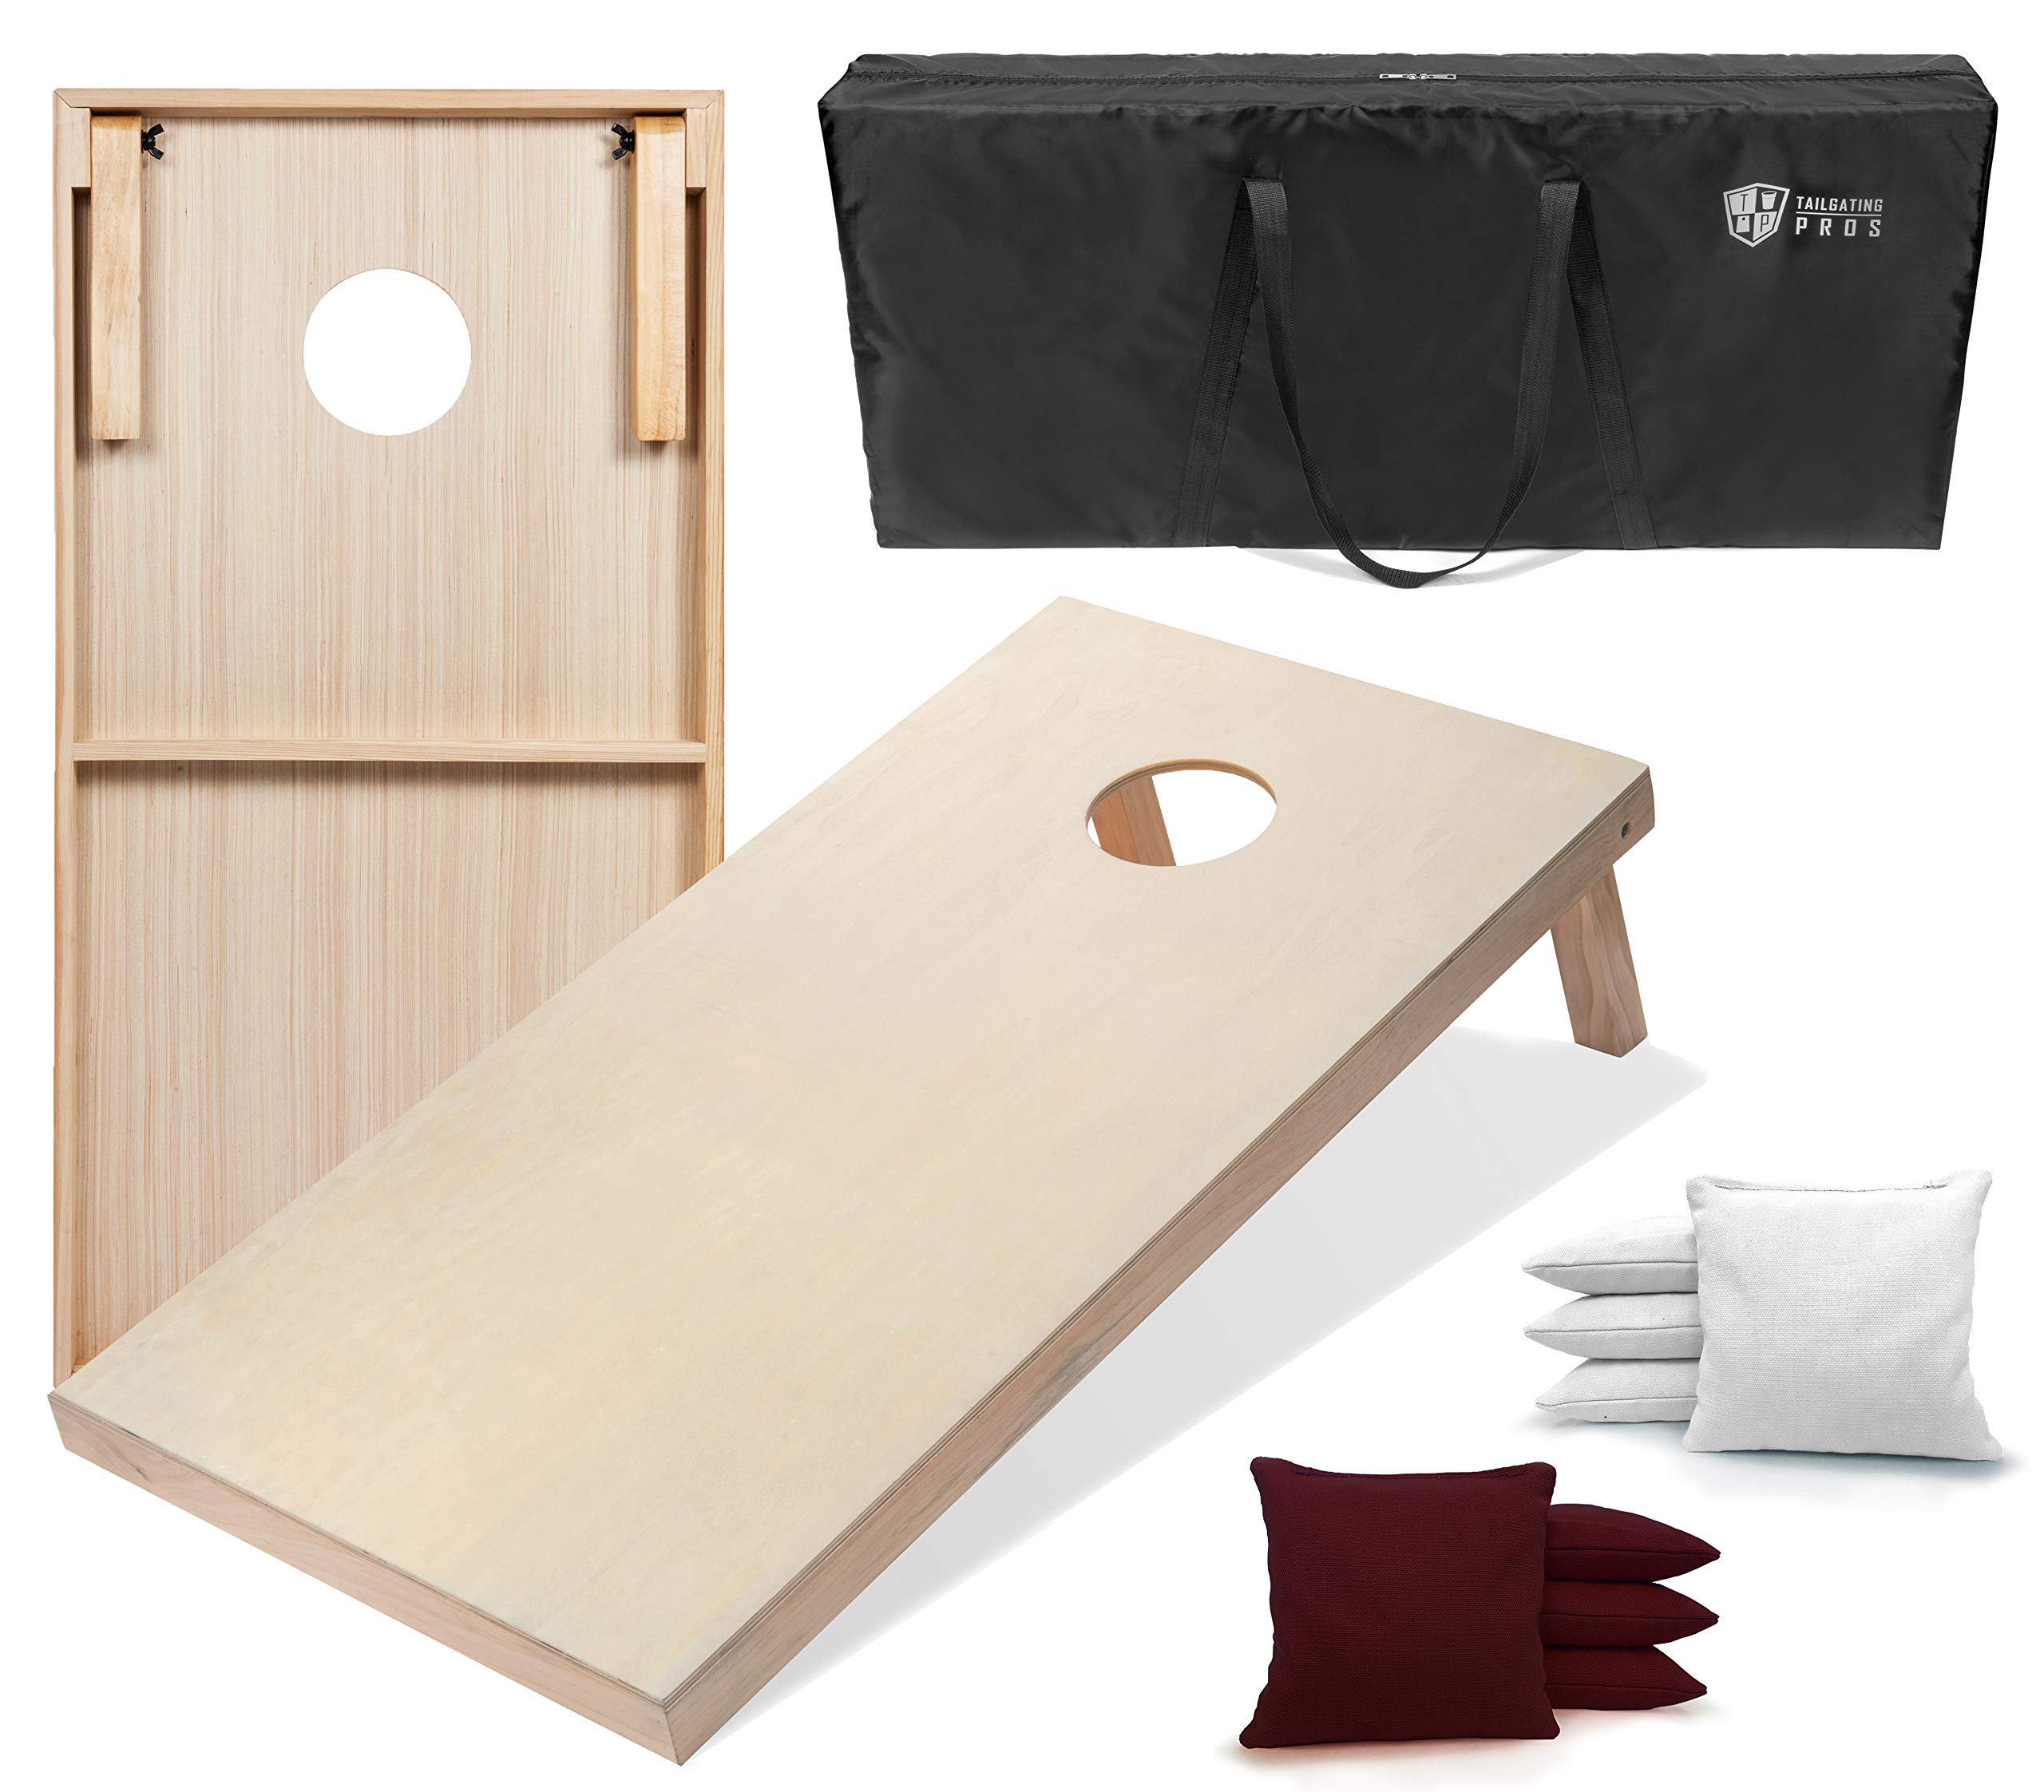 Tailgating Pros 4'x2' & 3'x2' Cornhole Boards w/Carrying Case & Set of 8 Cornhole Bags (You Pick Color) 25 Bag Colors! (Maroon/White, 4'x2' Boards) by Tailgating Pros